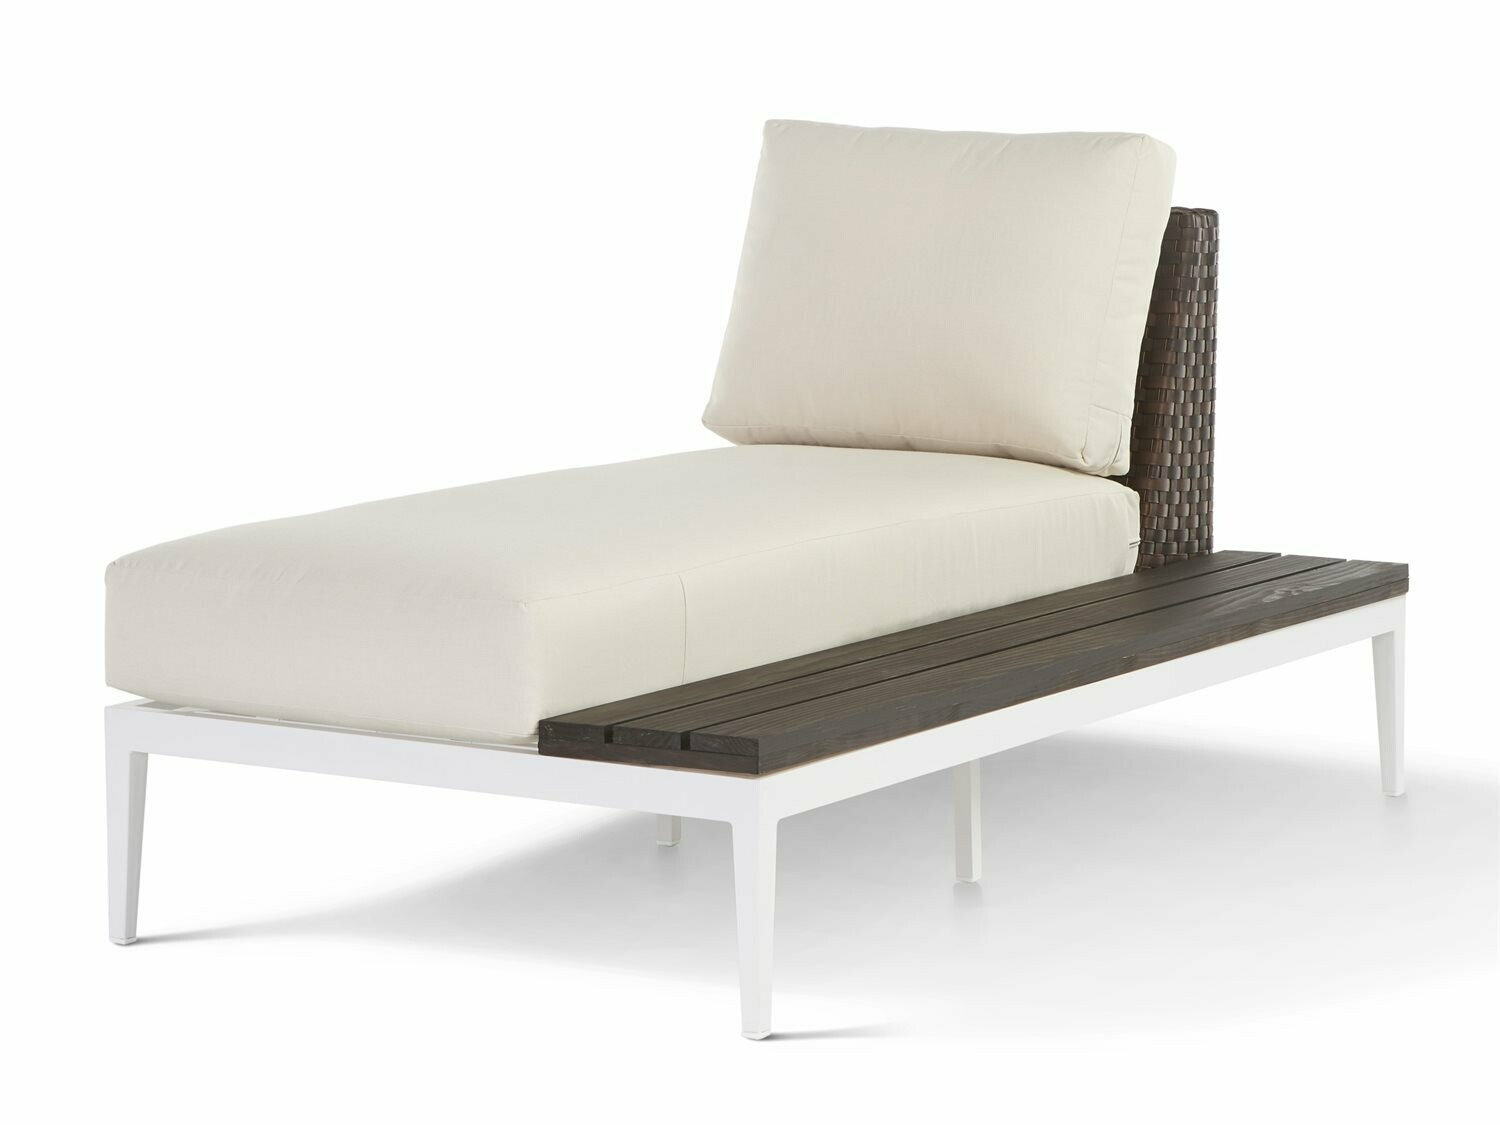 South Sea Rattan Stevie Wicker Chaise Lounge with Right Side Facing Table